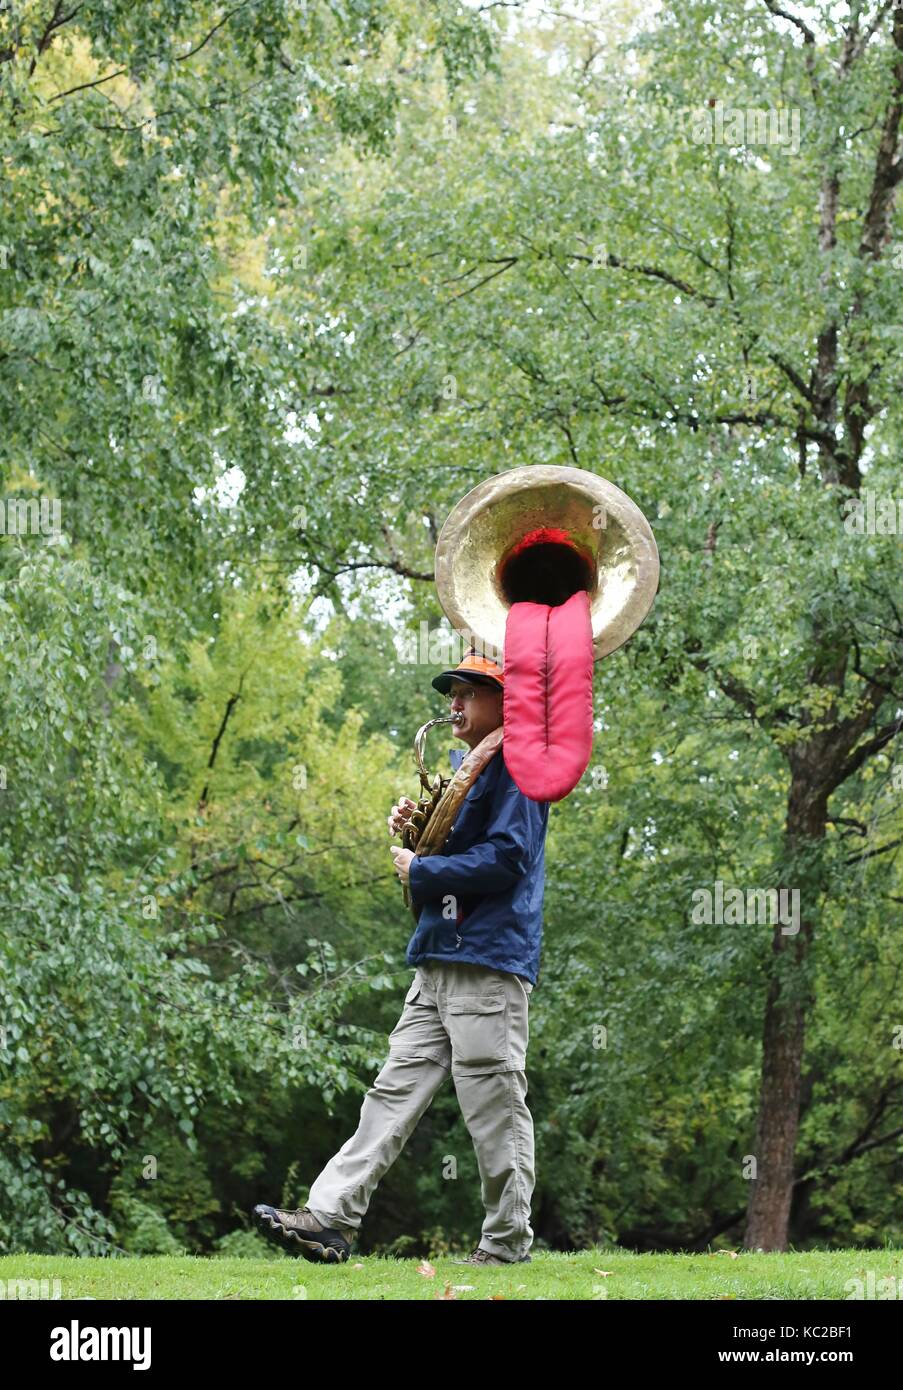 A man playing a tuba with a tongue hanging out of it, at the Twin Cities Marathon in Minneapolis, MN, USA. - Stock Image